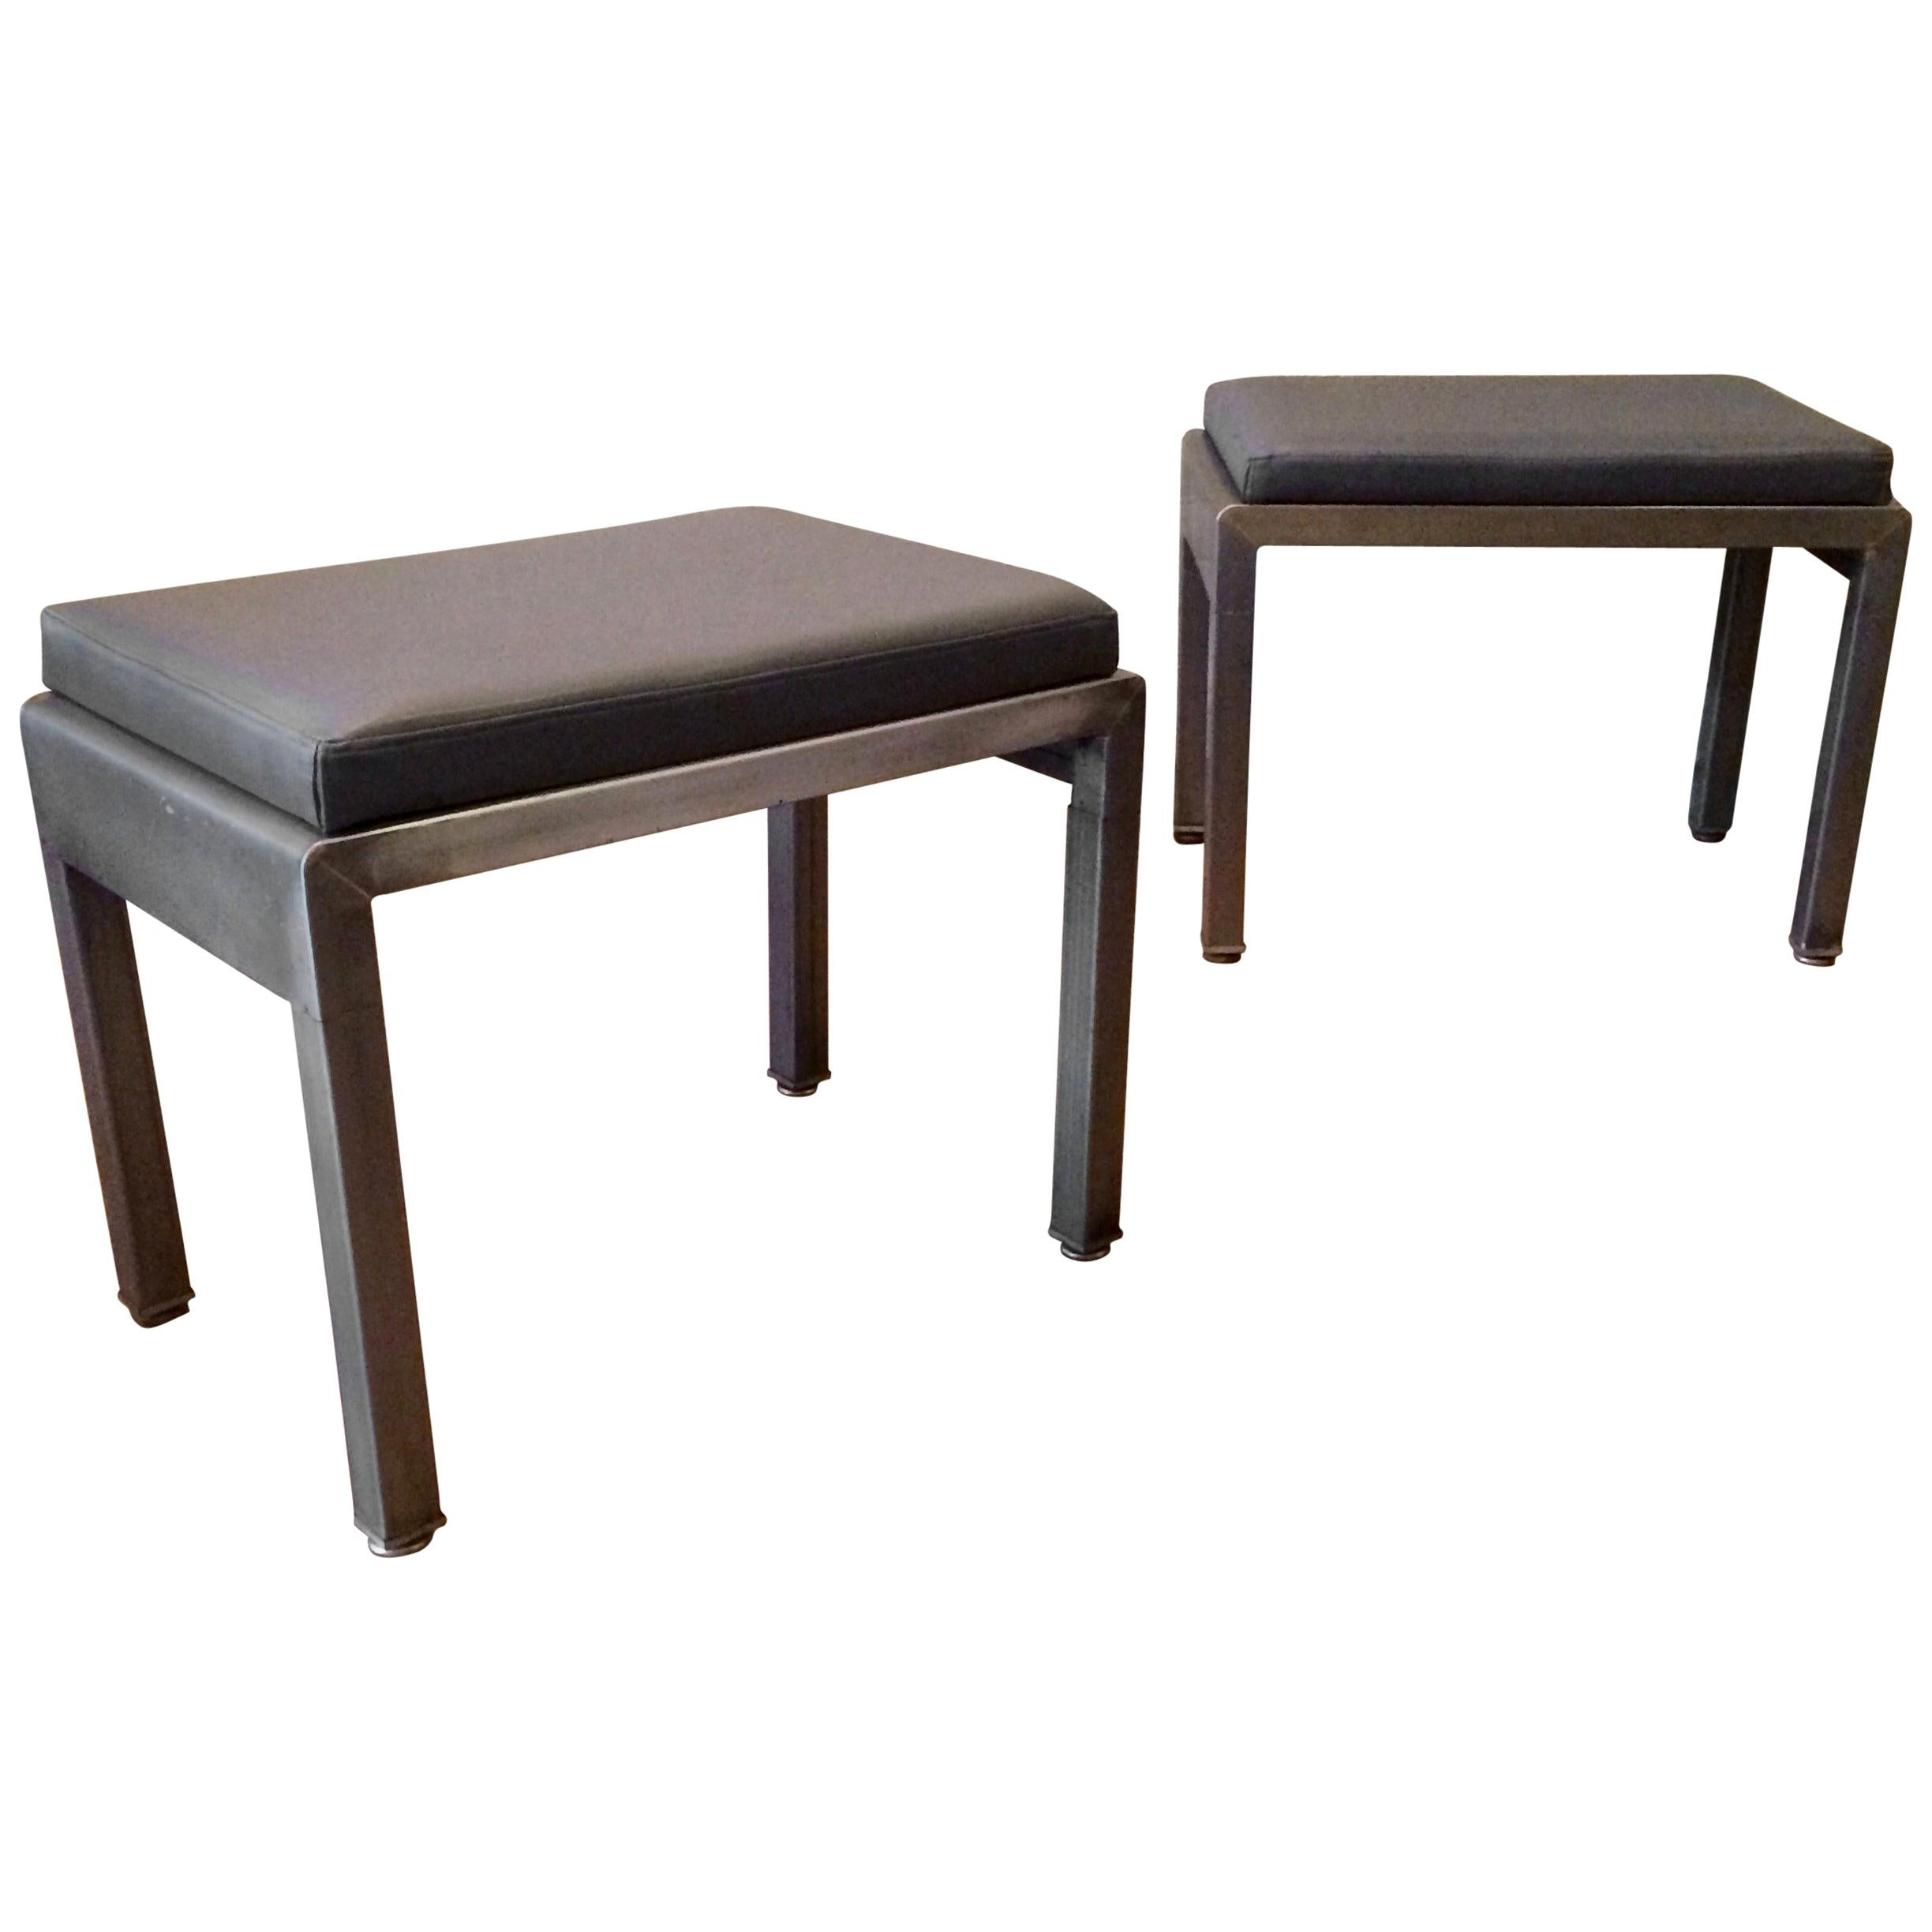 Art Deco Ottomans by Norman Bel Geddes for Simmons